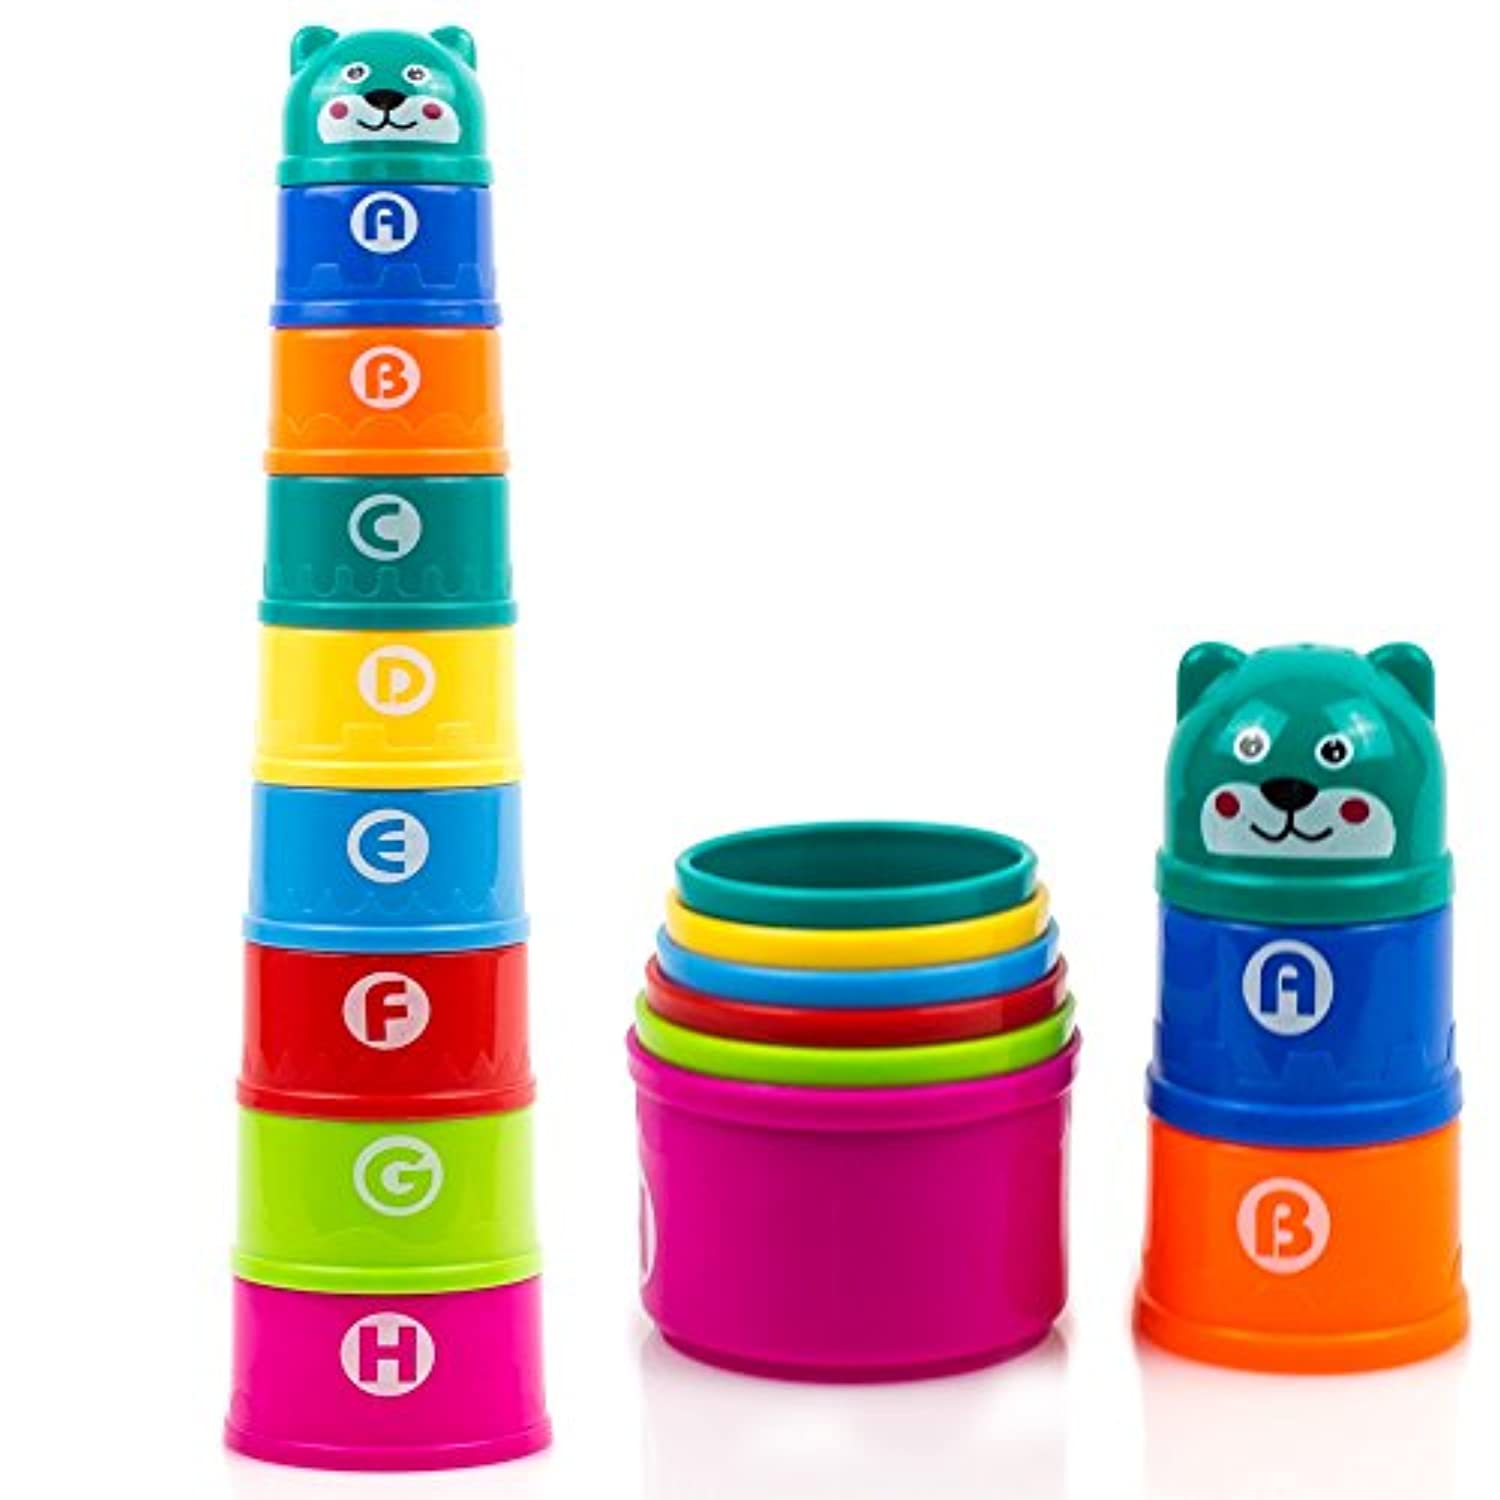 toysery Nesting & Stackingカップwith Numbers Letters &動物おもちゃfor Toddlers – Bath Toy for Kids、8パック